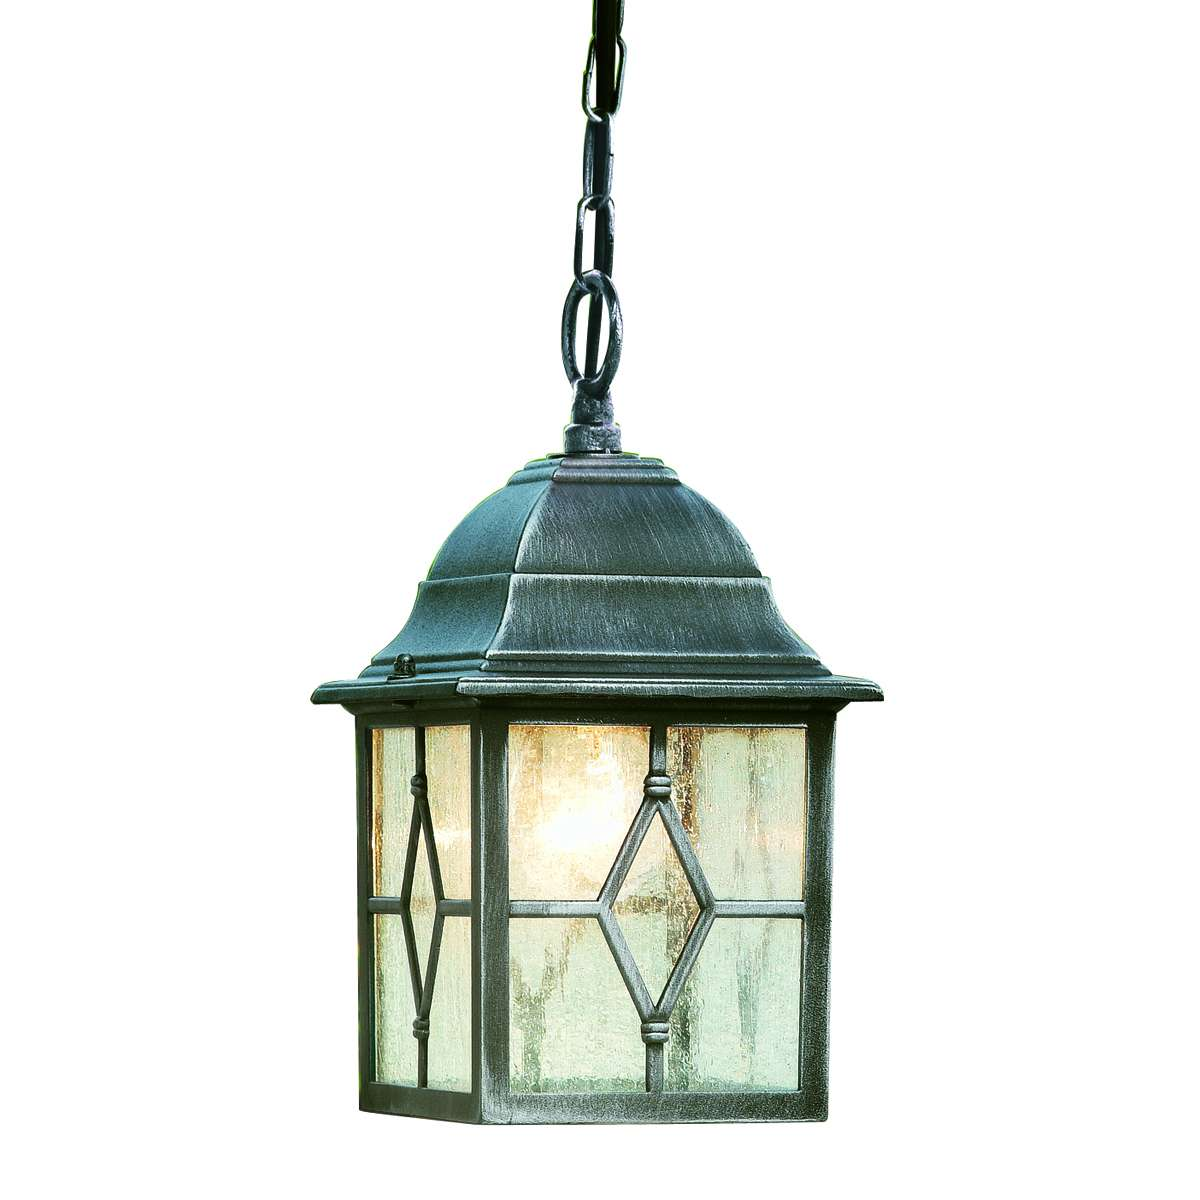 Genoa Ip23 Black & Silver Outdoor Porch Light With Lead Glass